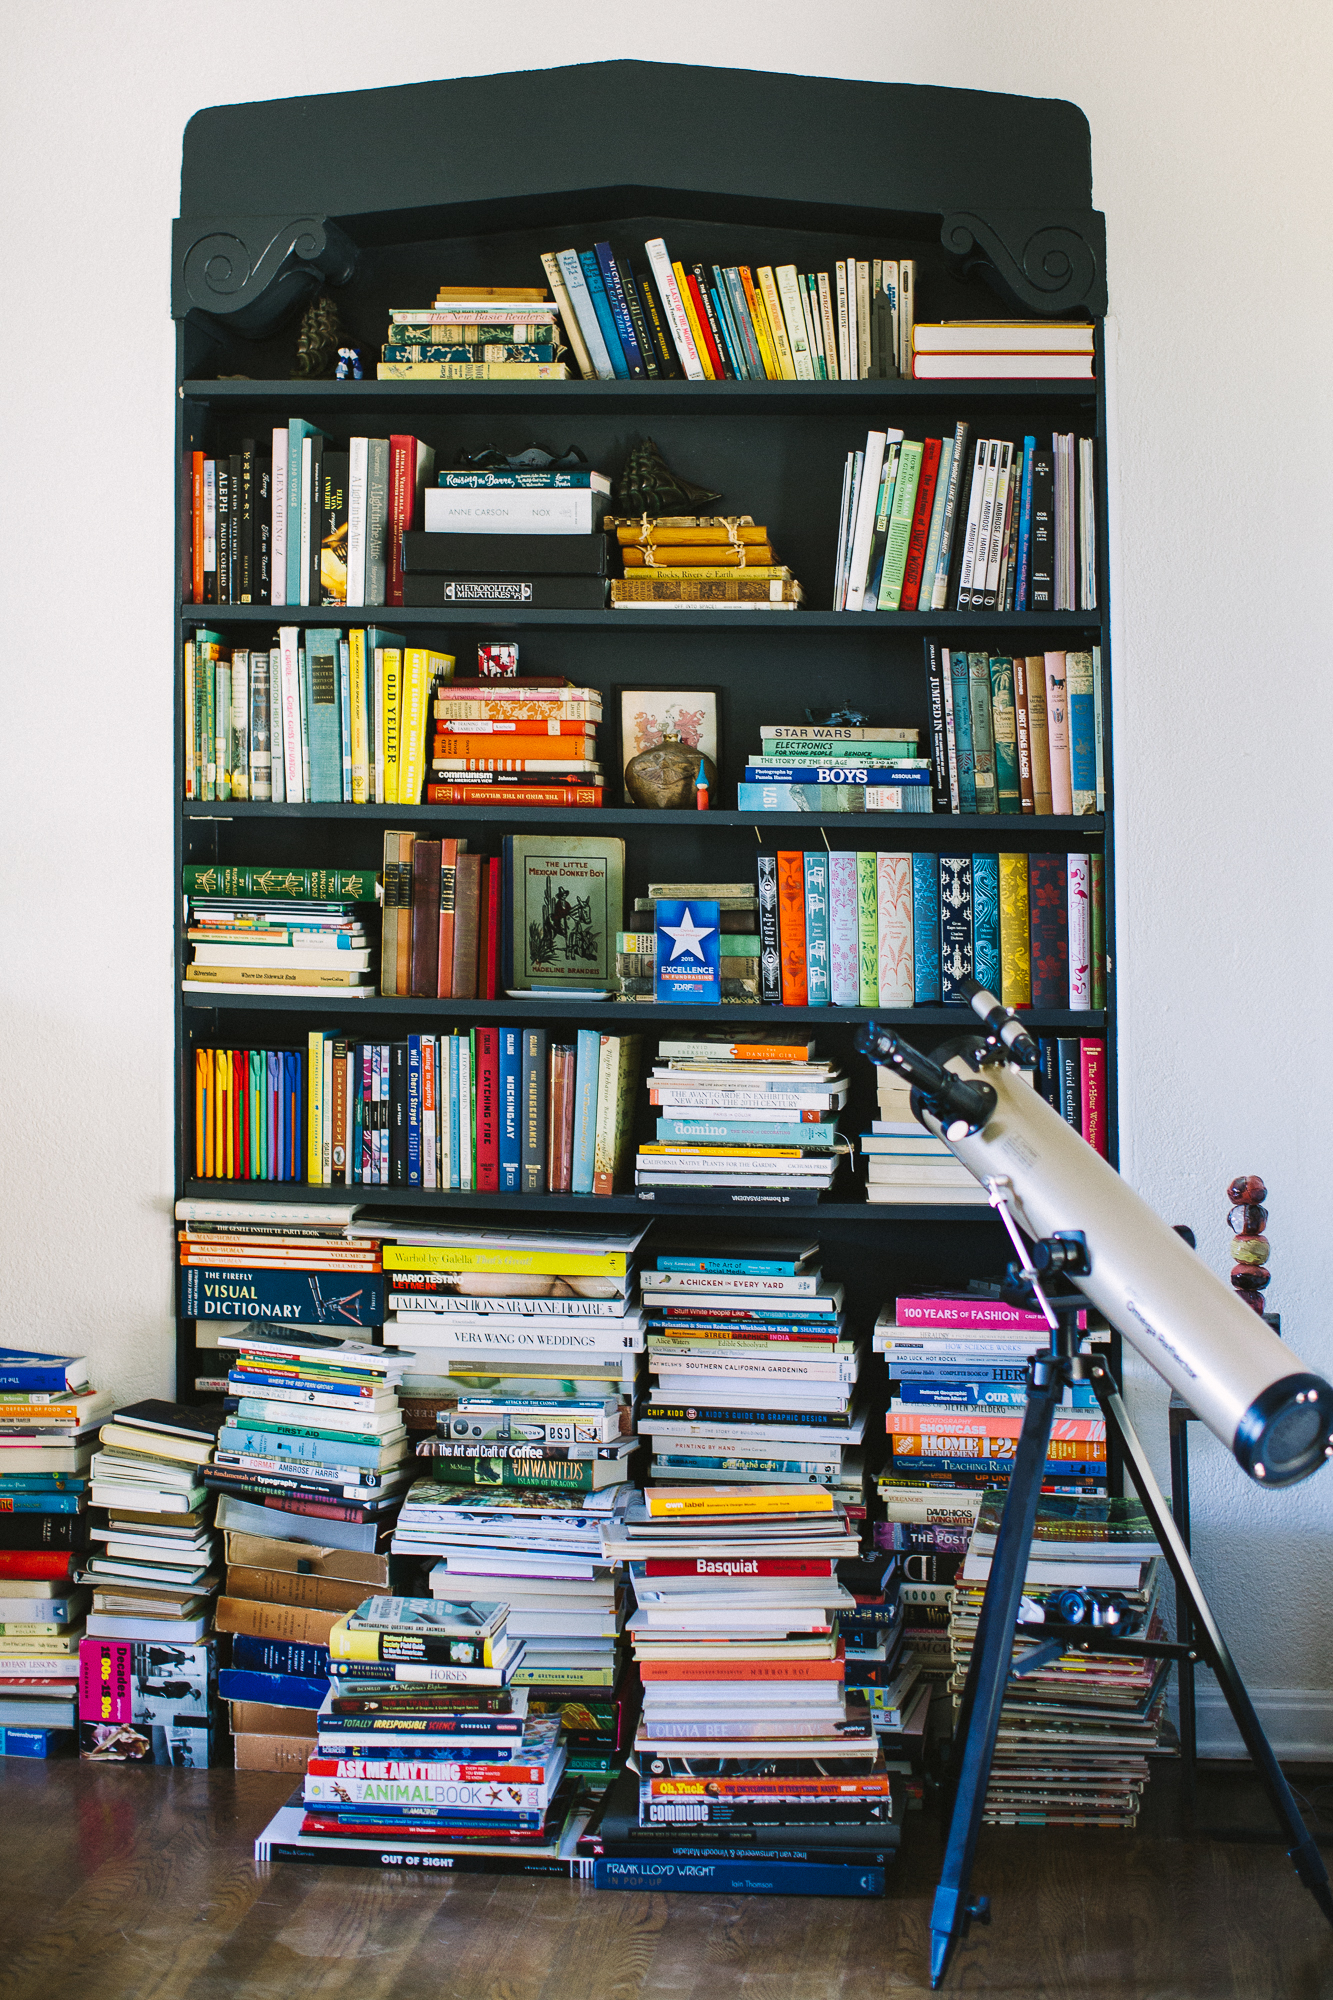 The shared family bookshelf.